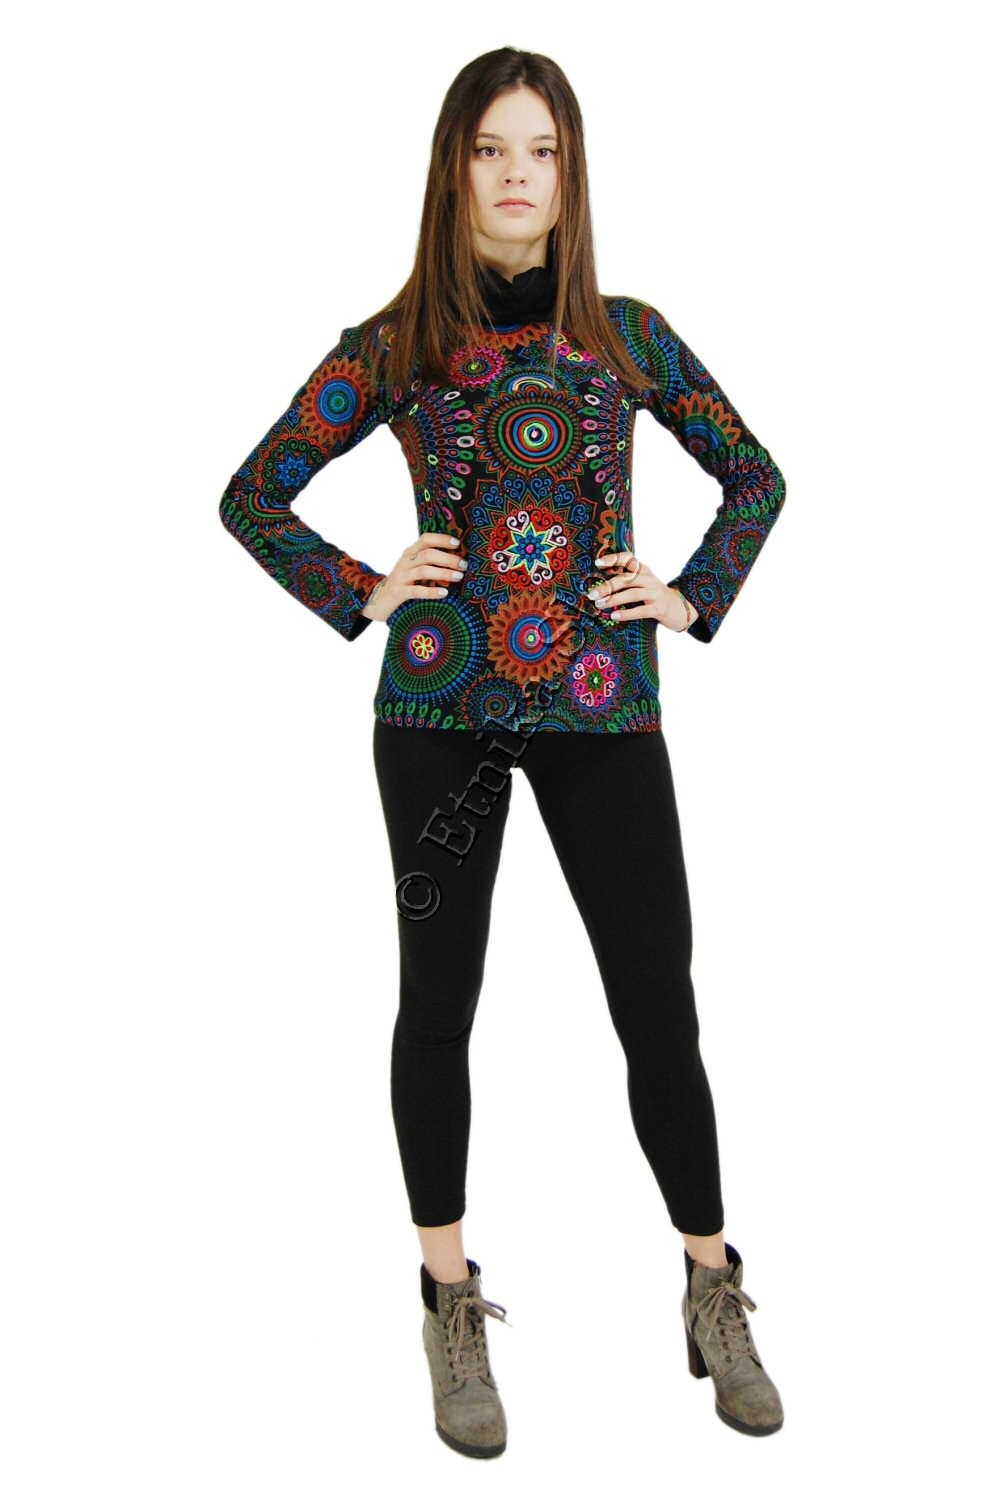 LONG SLEEVES SWEATERS AB-BWM12-01 - Oriente Import S.r.l.